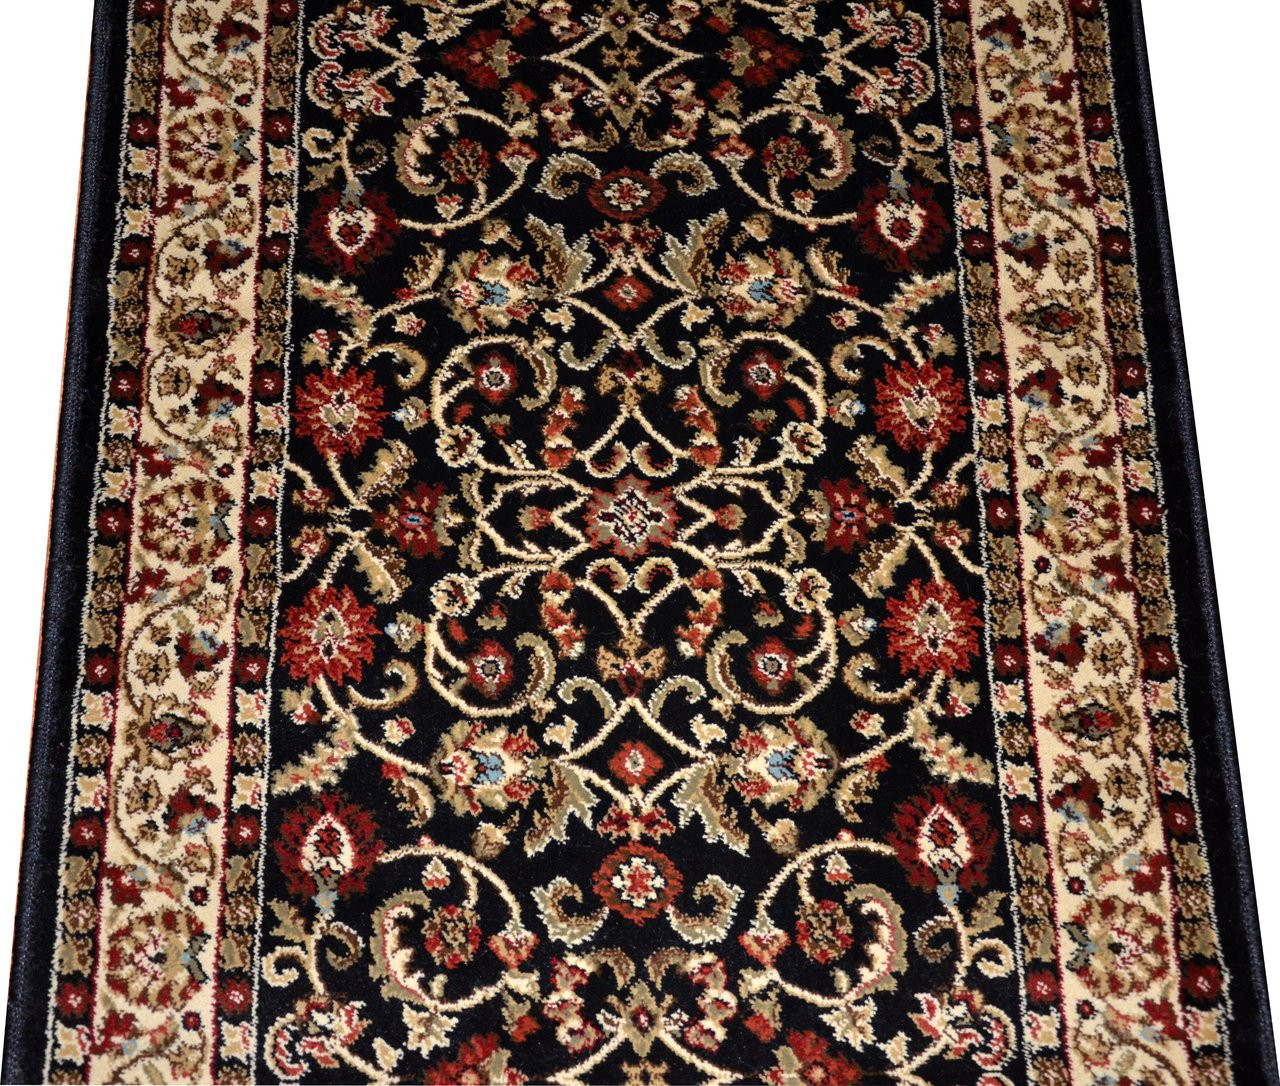 Dean Classic Keshan Ebony Custom Length Carpet Rug Runner